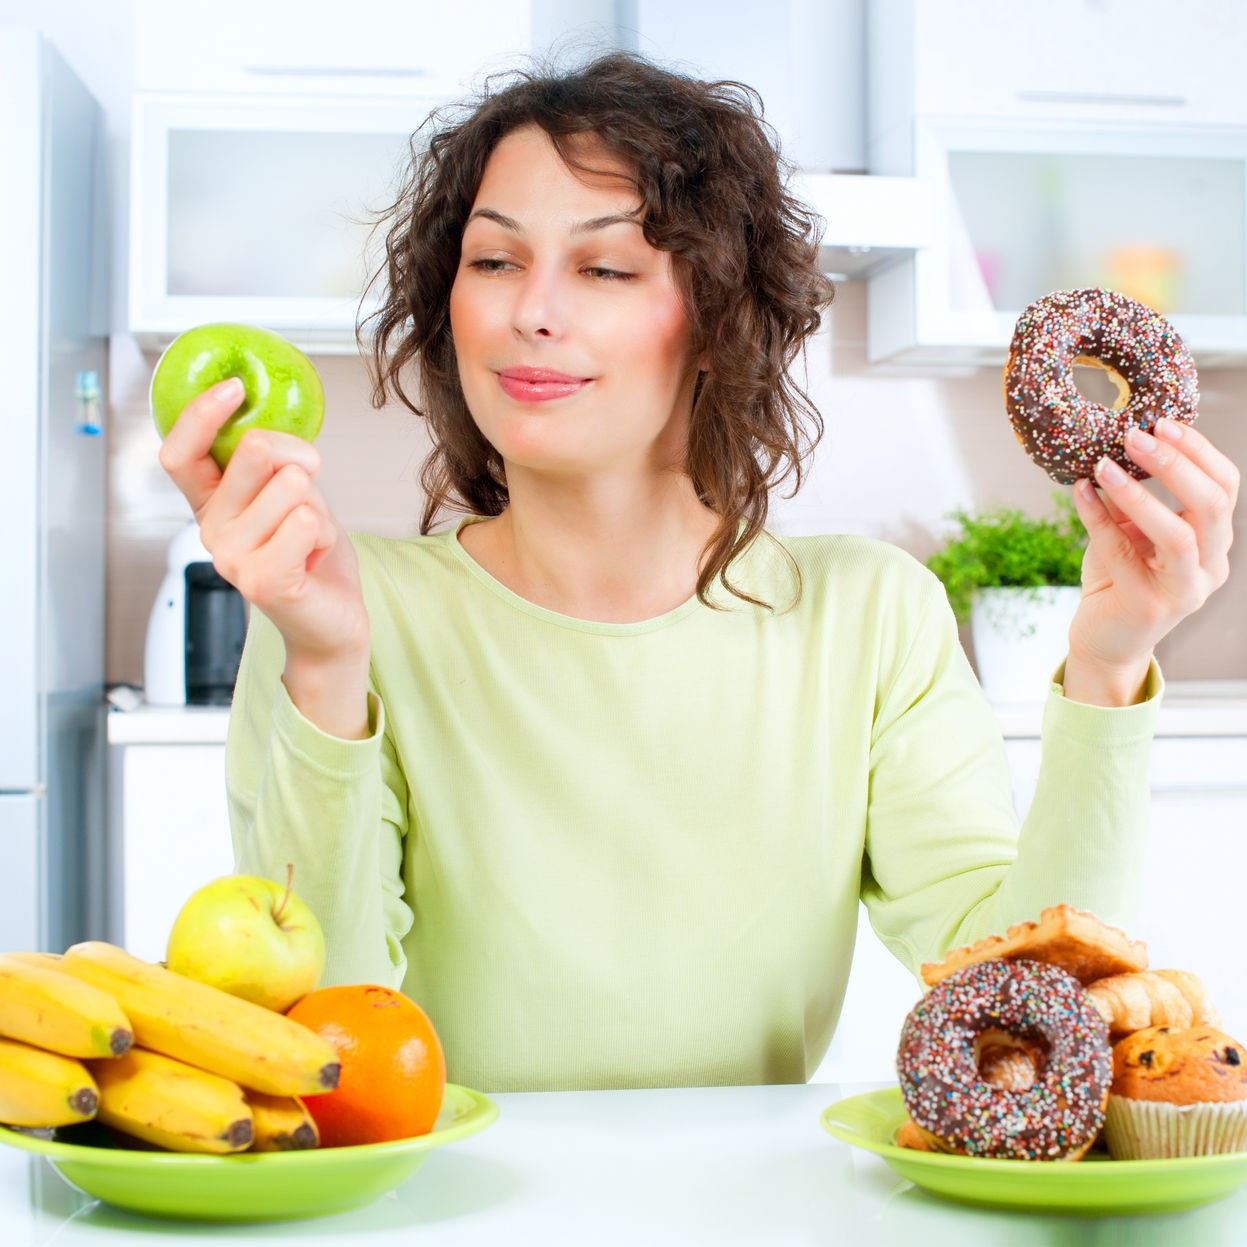 Mom making food choice for good energy